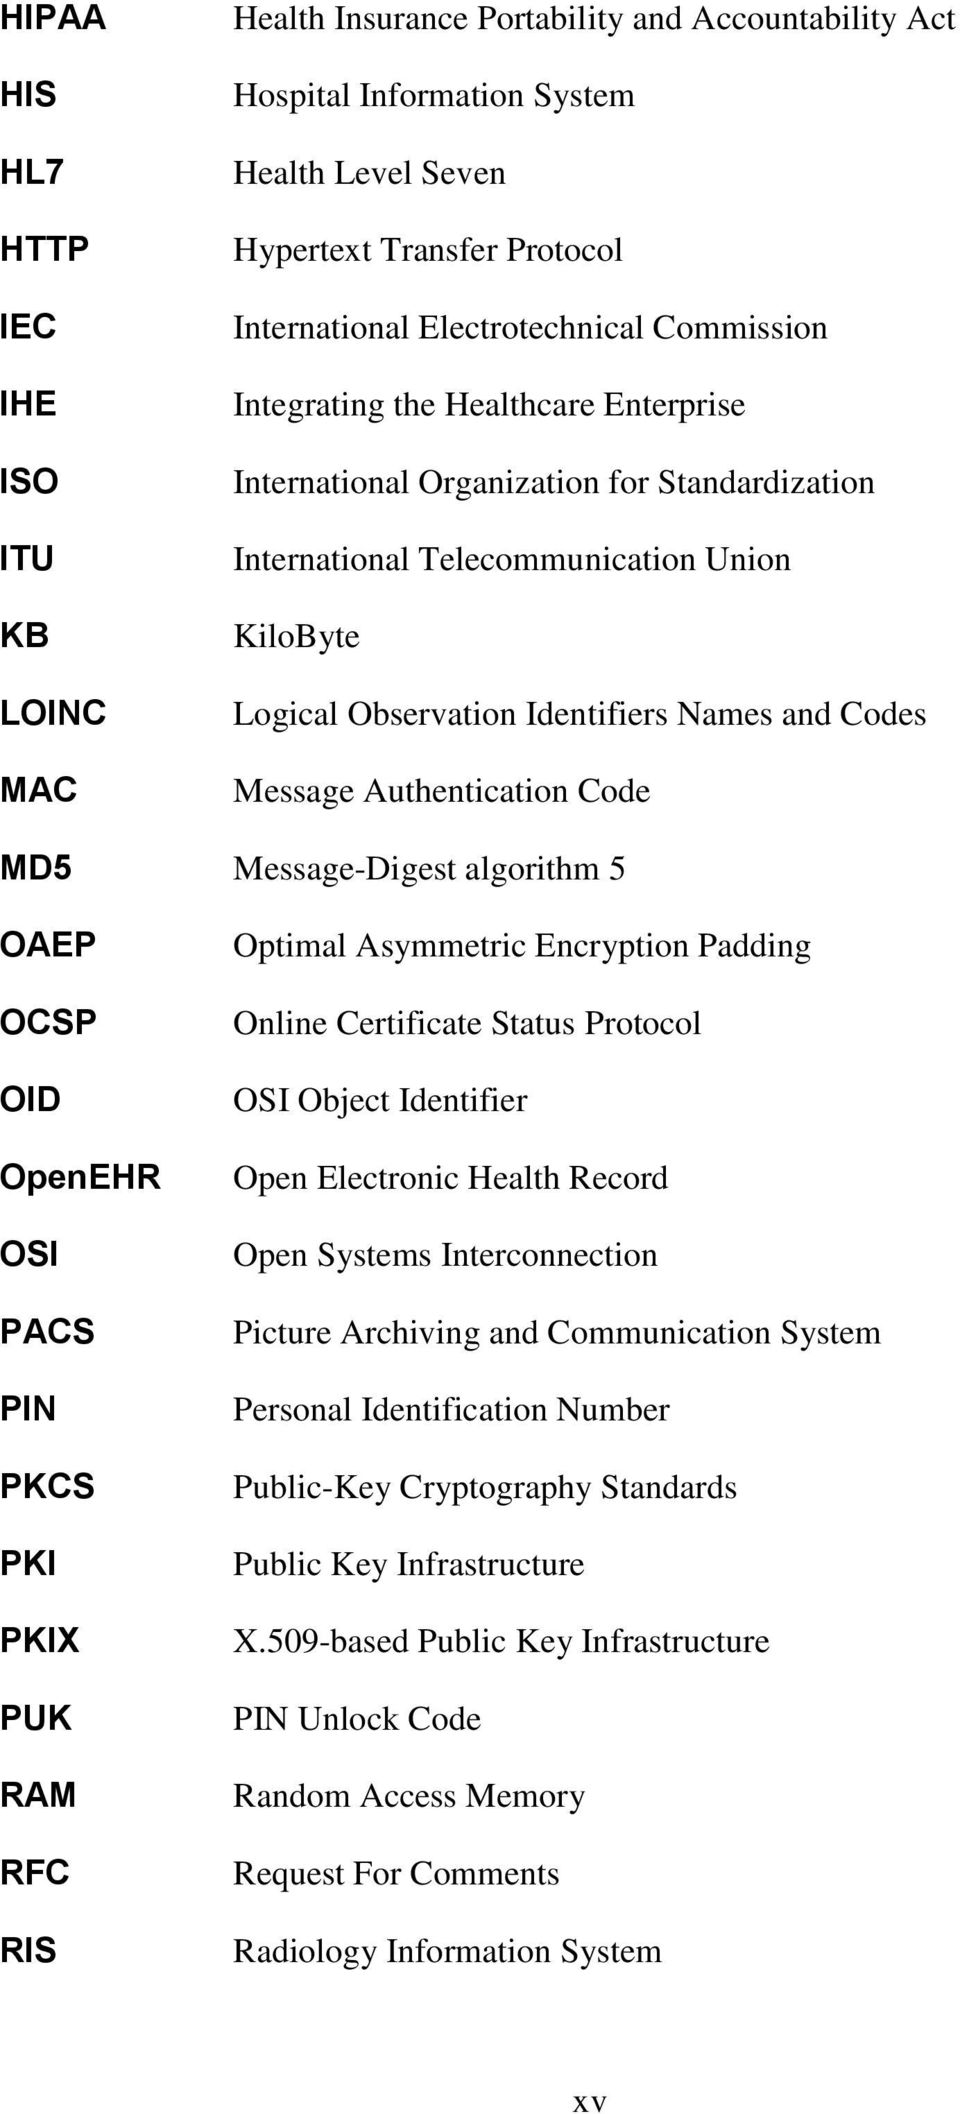 and Codes Message Authentication Code MD5 Message-Digest algorithm 5 OAEP OCSP OID OpenEHR OSI PACS PIN PKCS PKI PKIX PUK RAM RFC RIS Optimal Asymmetric Encryption Padding Online Certificate Status